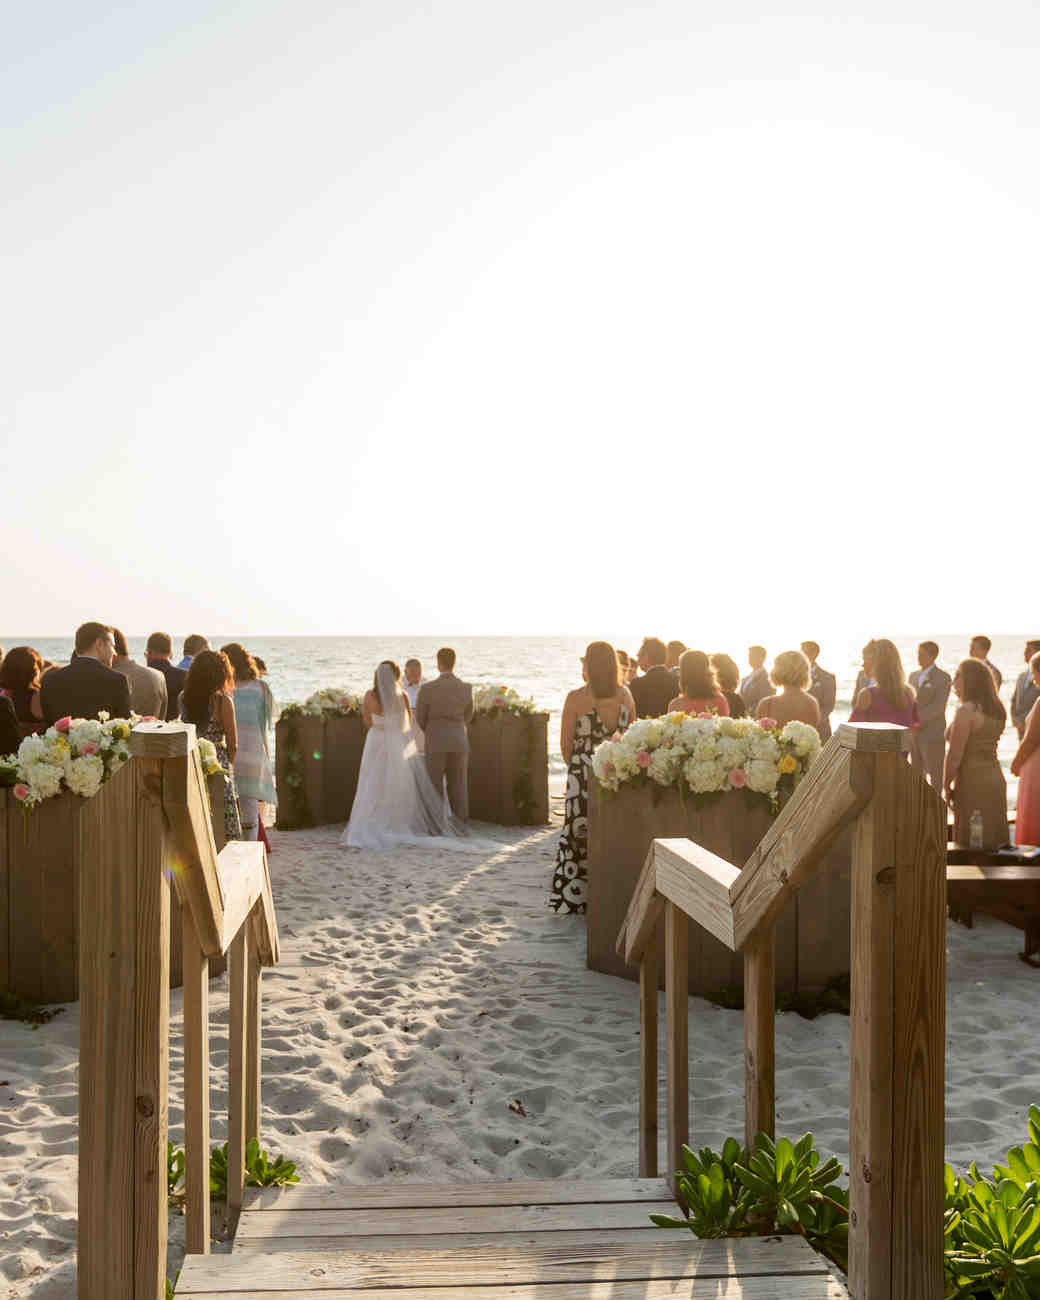 Belongil Beach Wedding Ceremony: A Lemon-Inspired Beach Wedding In Naples, Florida